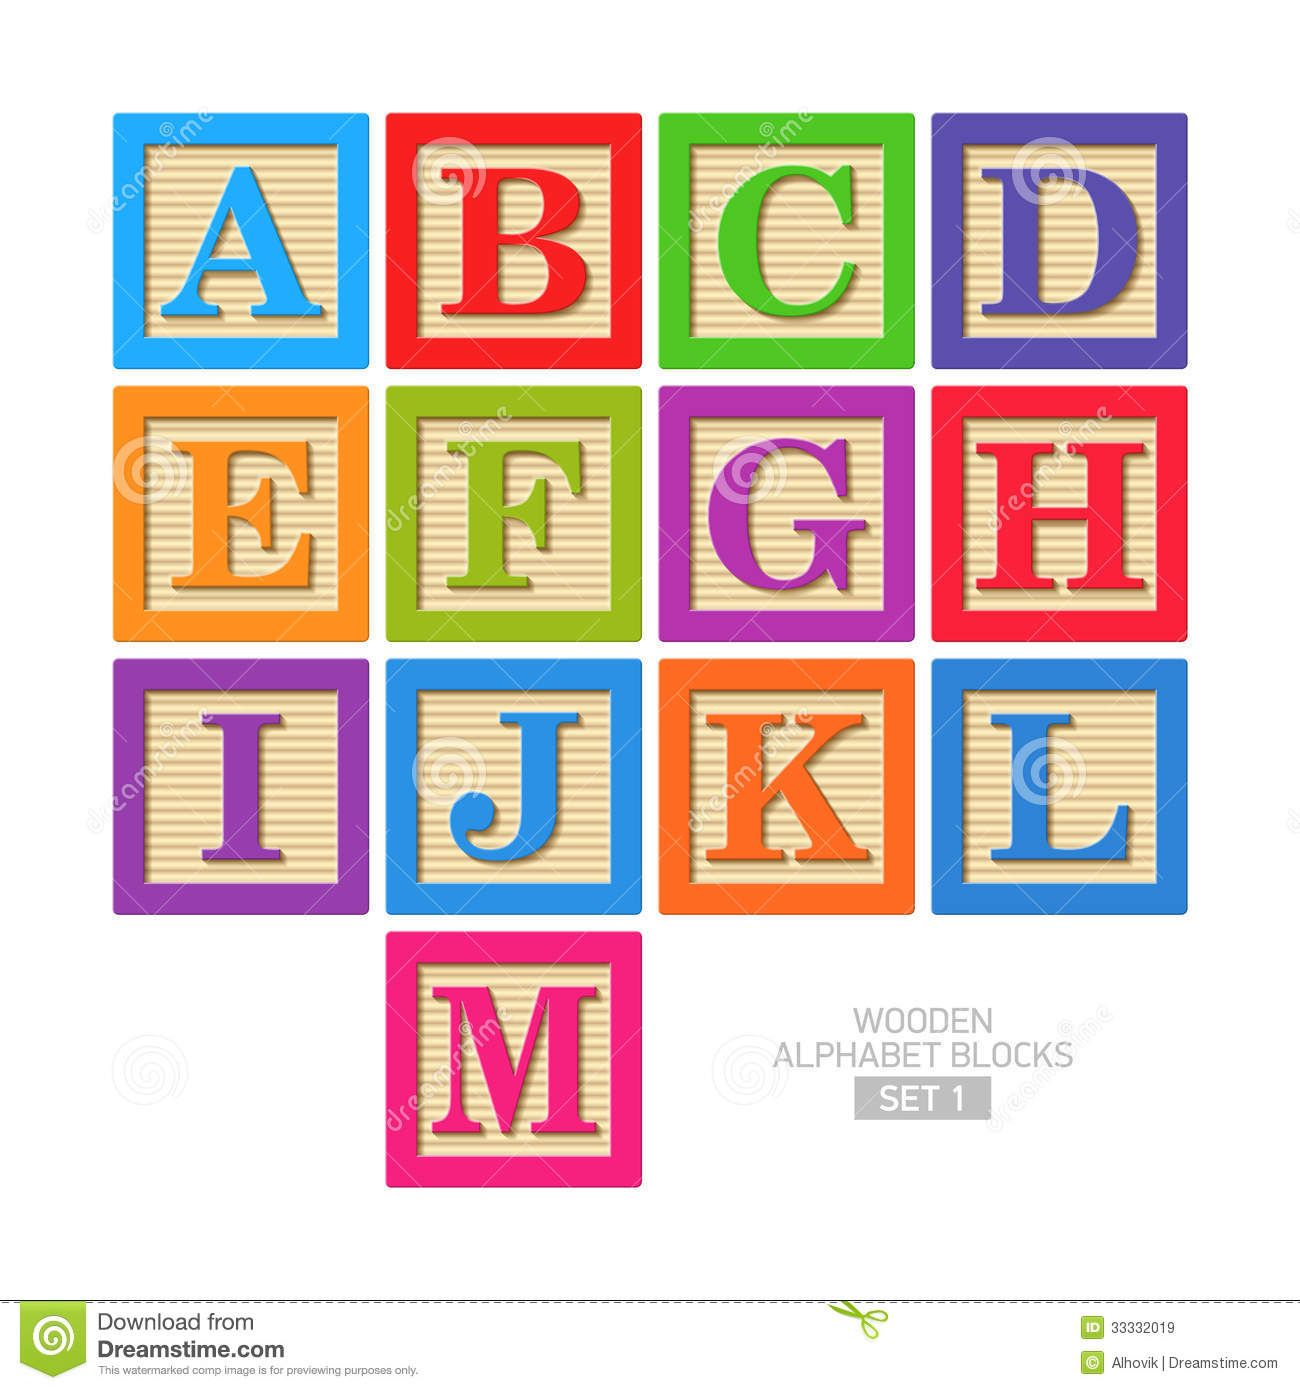 Wooden Alphabet Blocks Download From Over 27 Million High